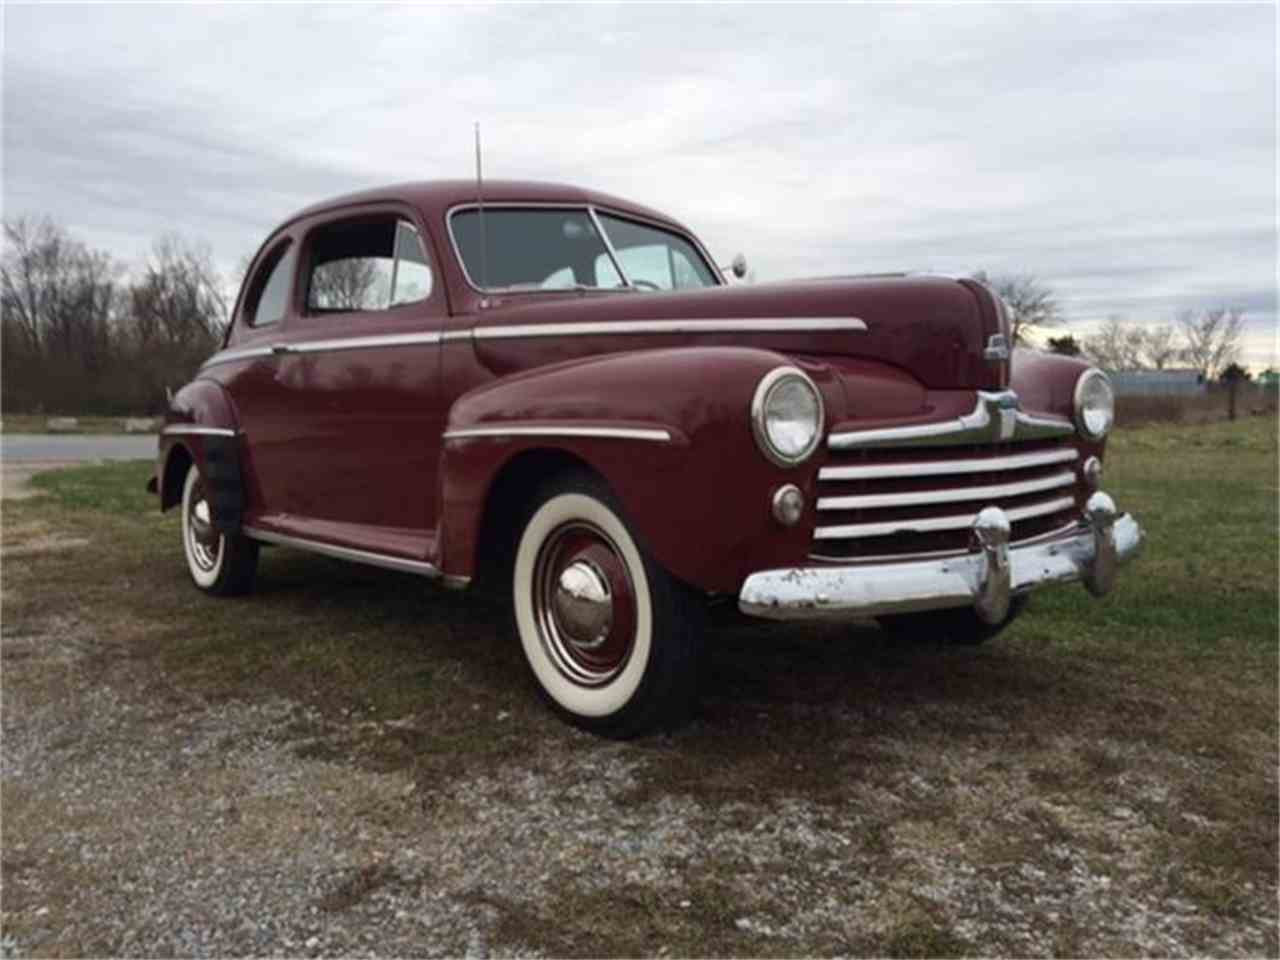 Cars For Sale In Wv: 1947 Ford Super Deluxe For Sale